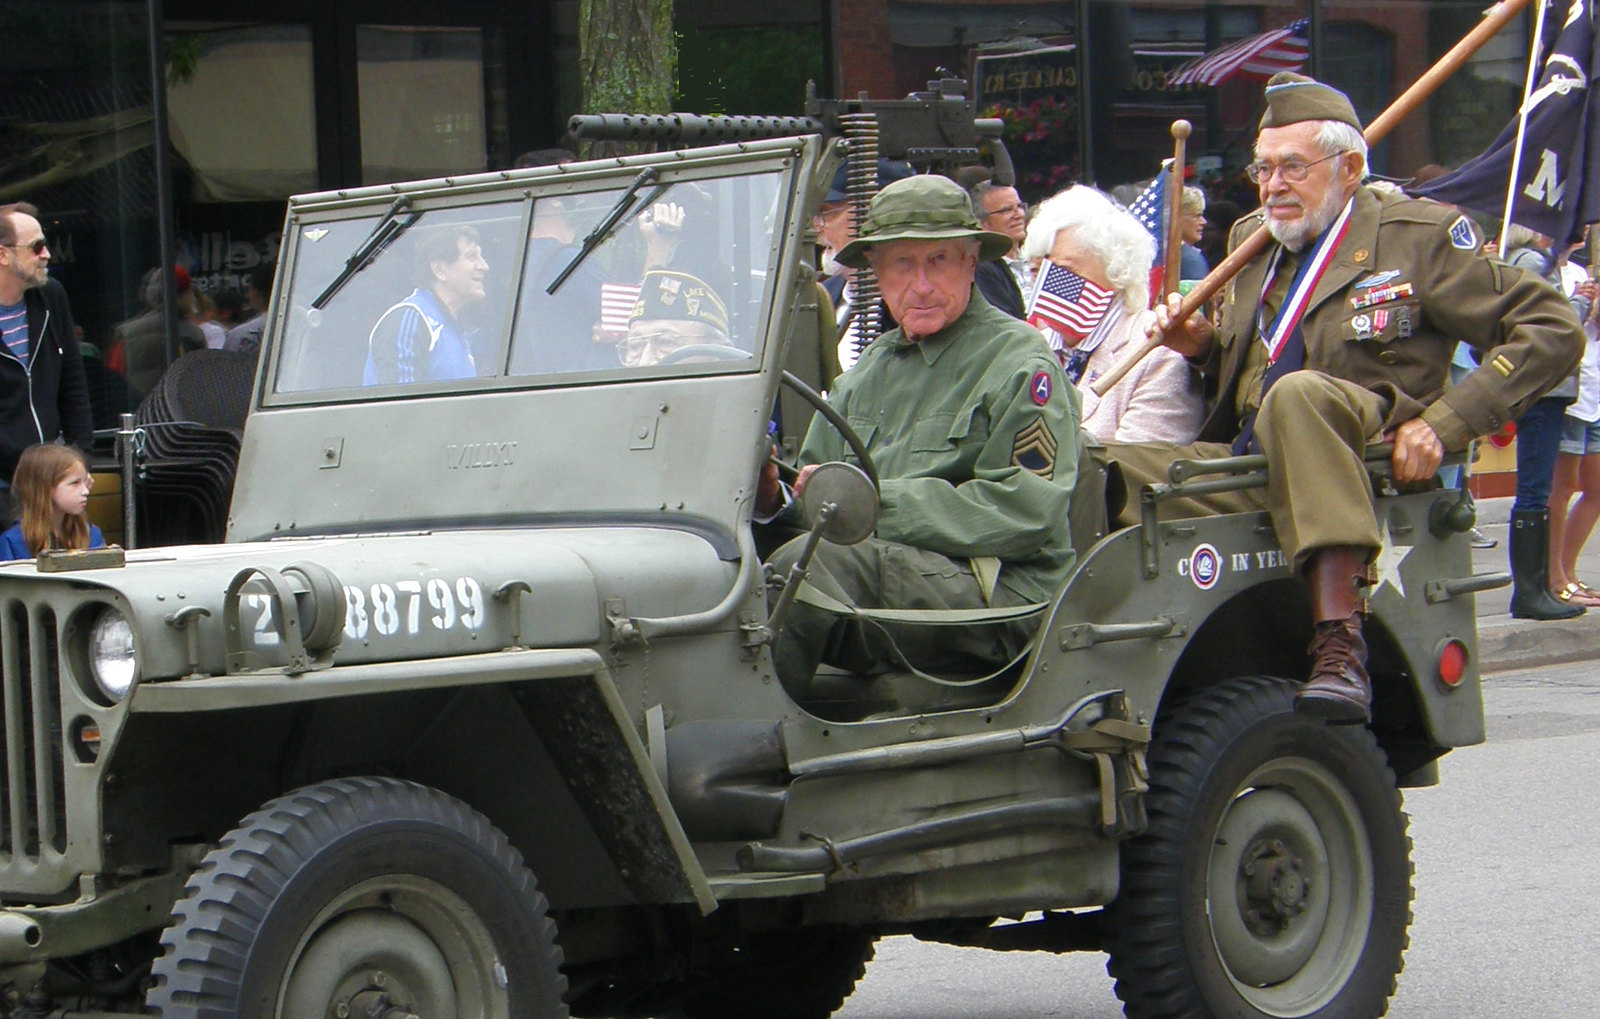 An old Sareant driving